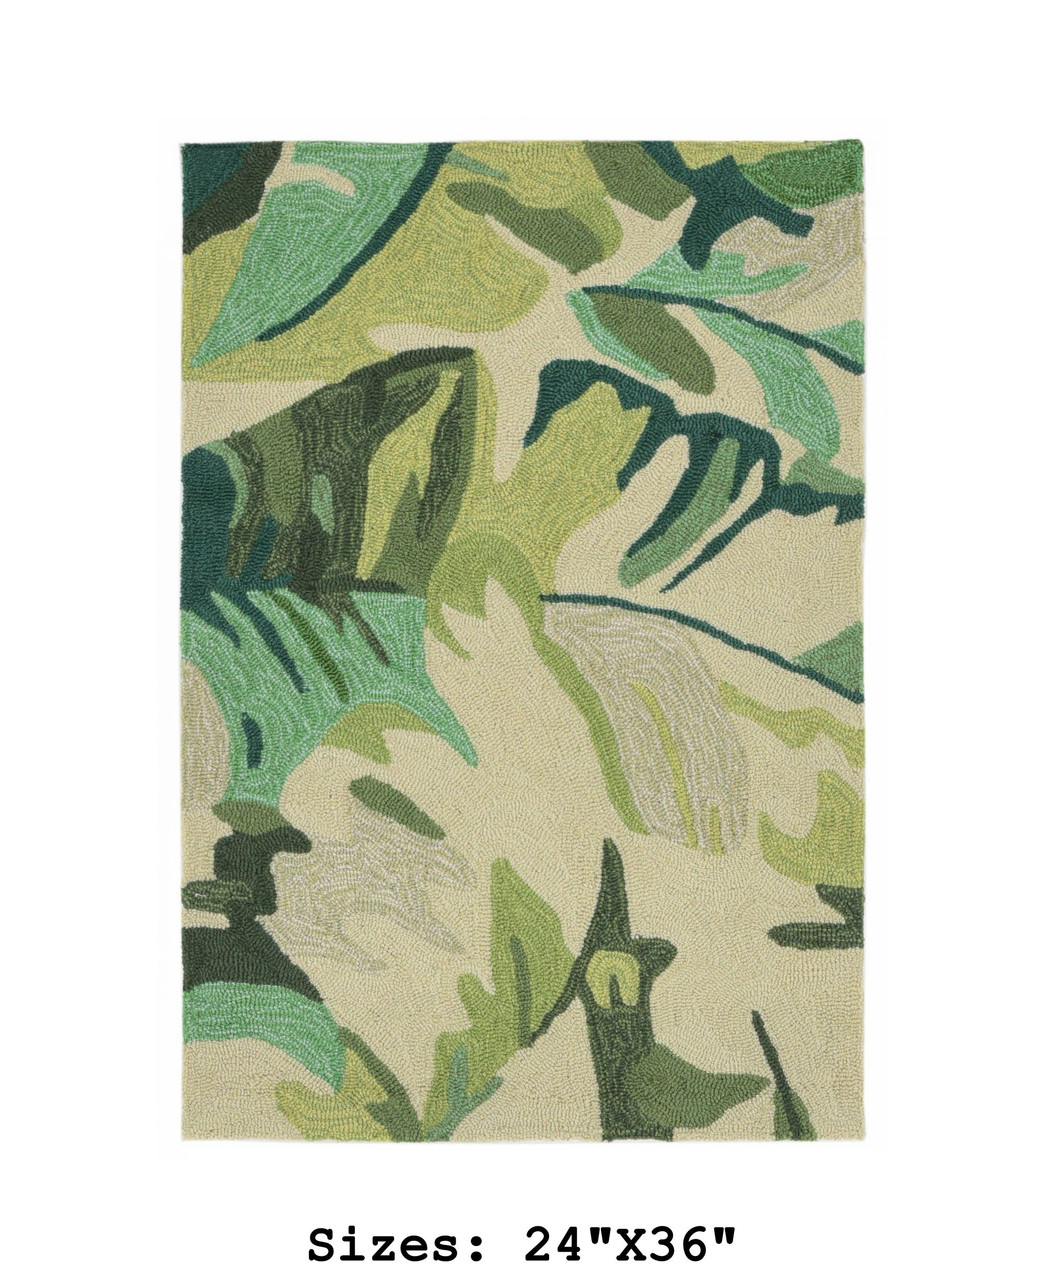 Green Capri Palm Leaf Indoor/Outdoor Rug -  Small Rectangle